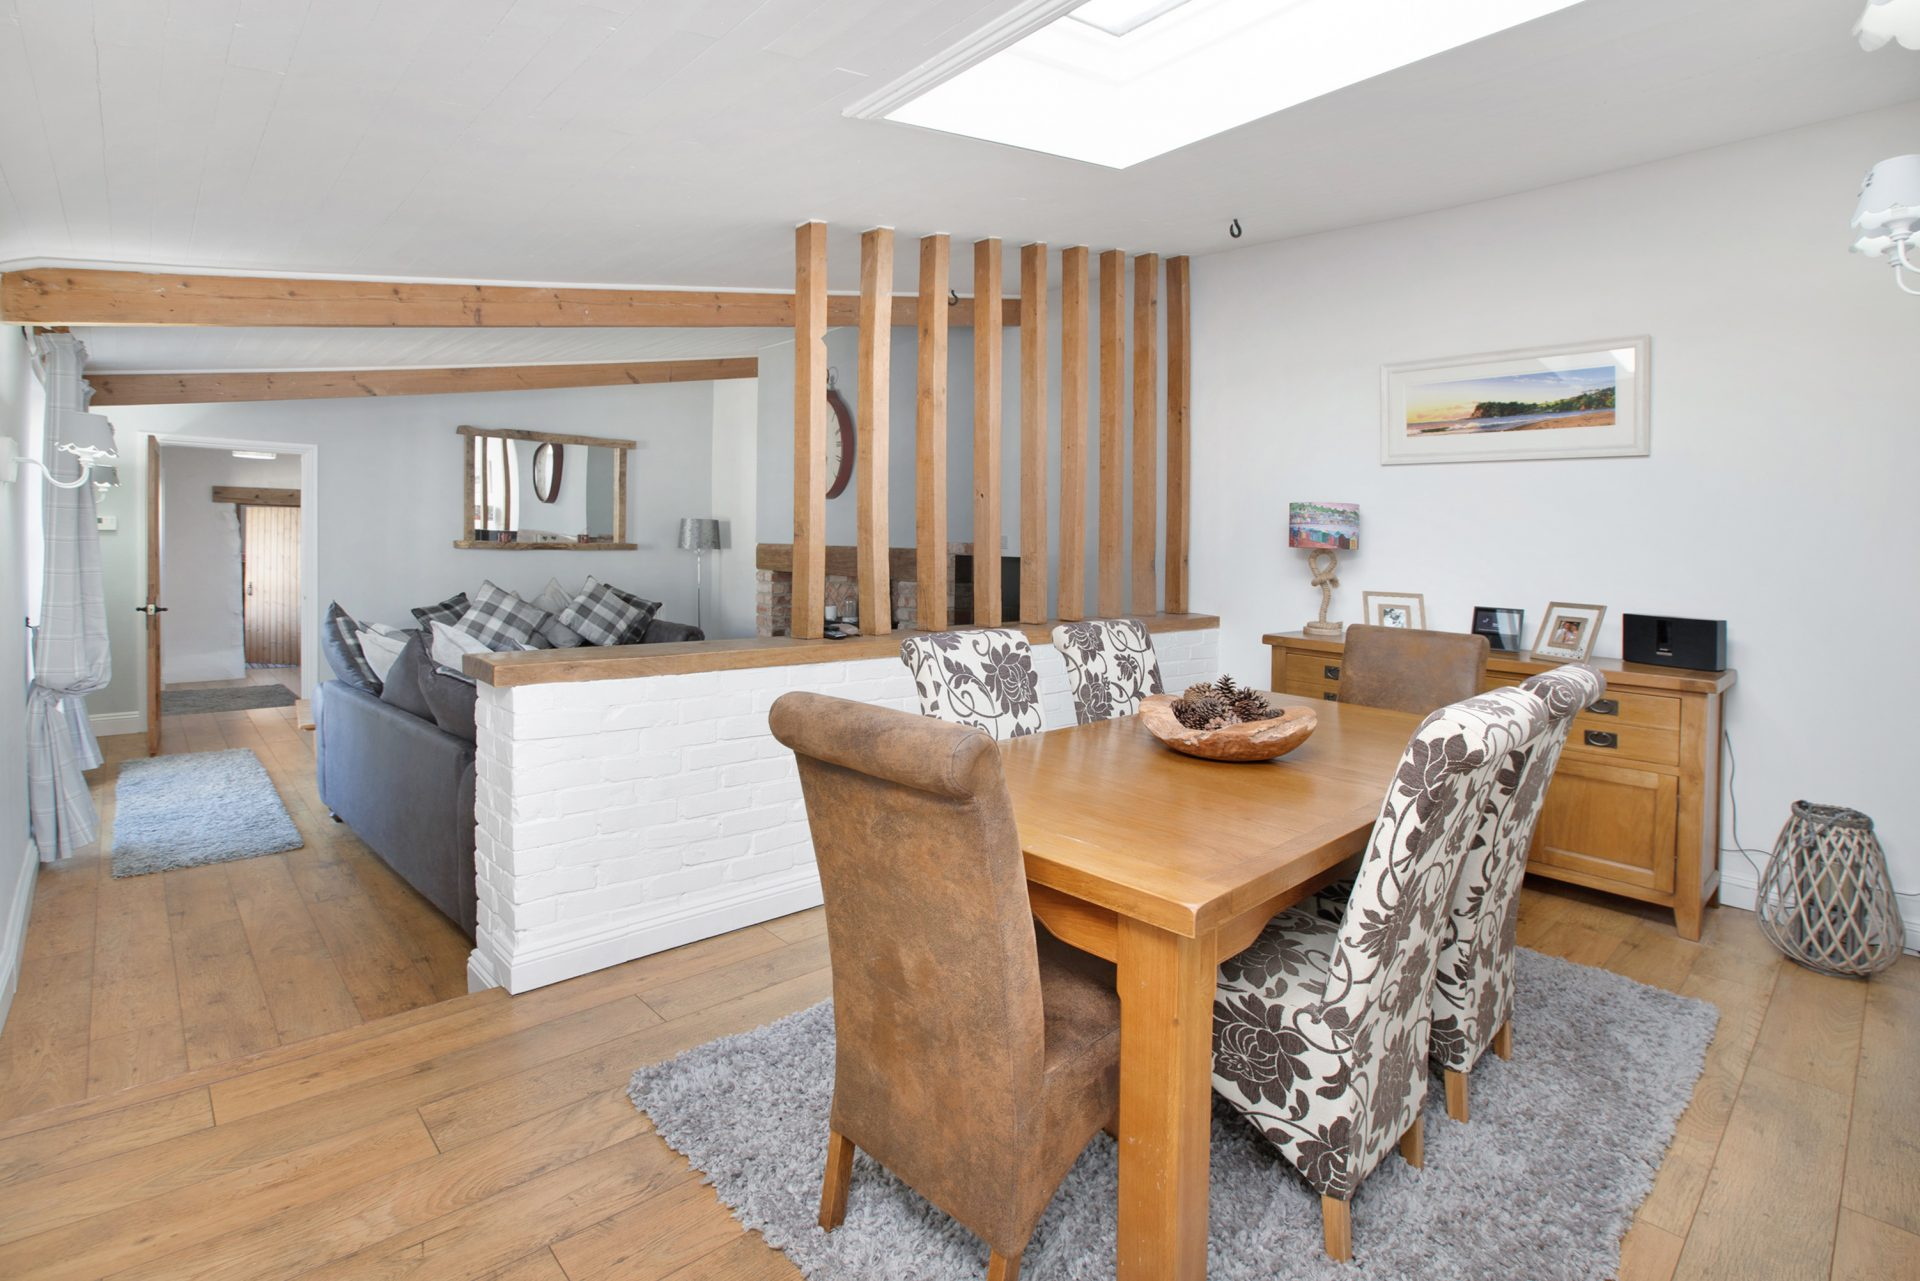 devon holiday home interior design before the decoration